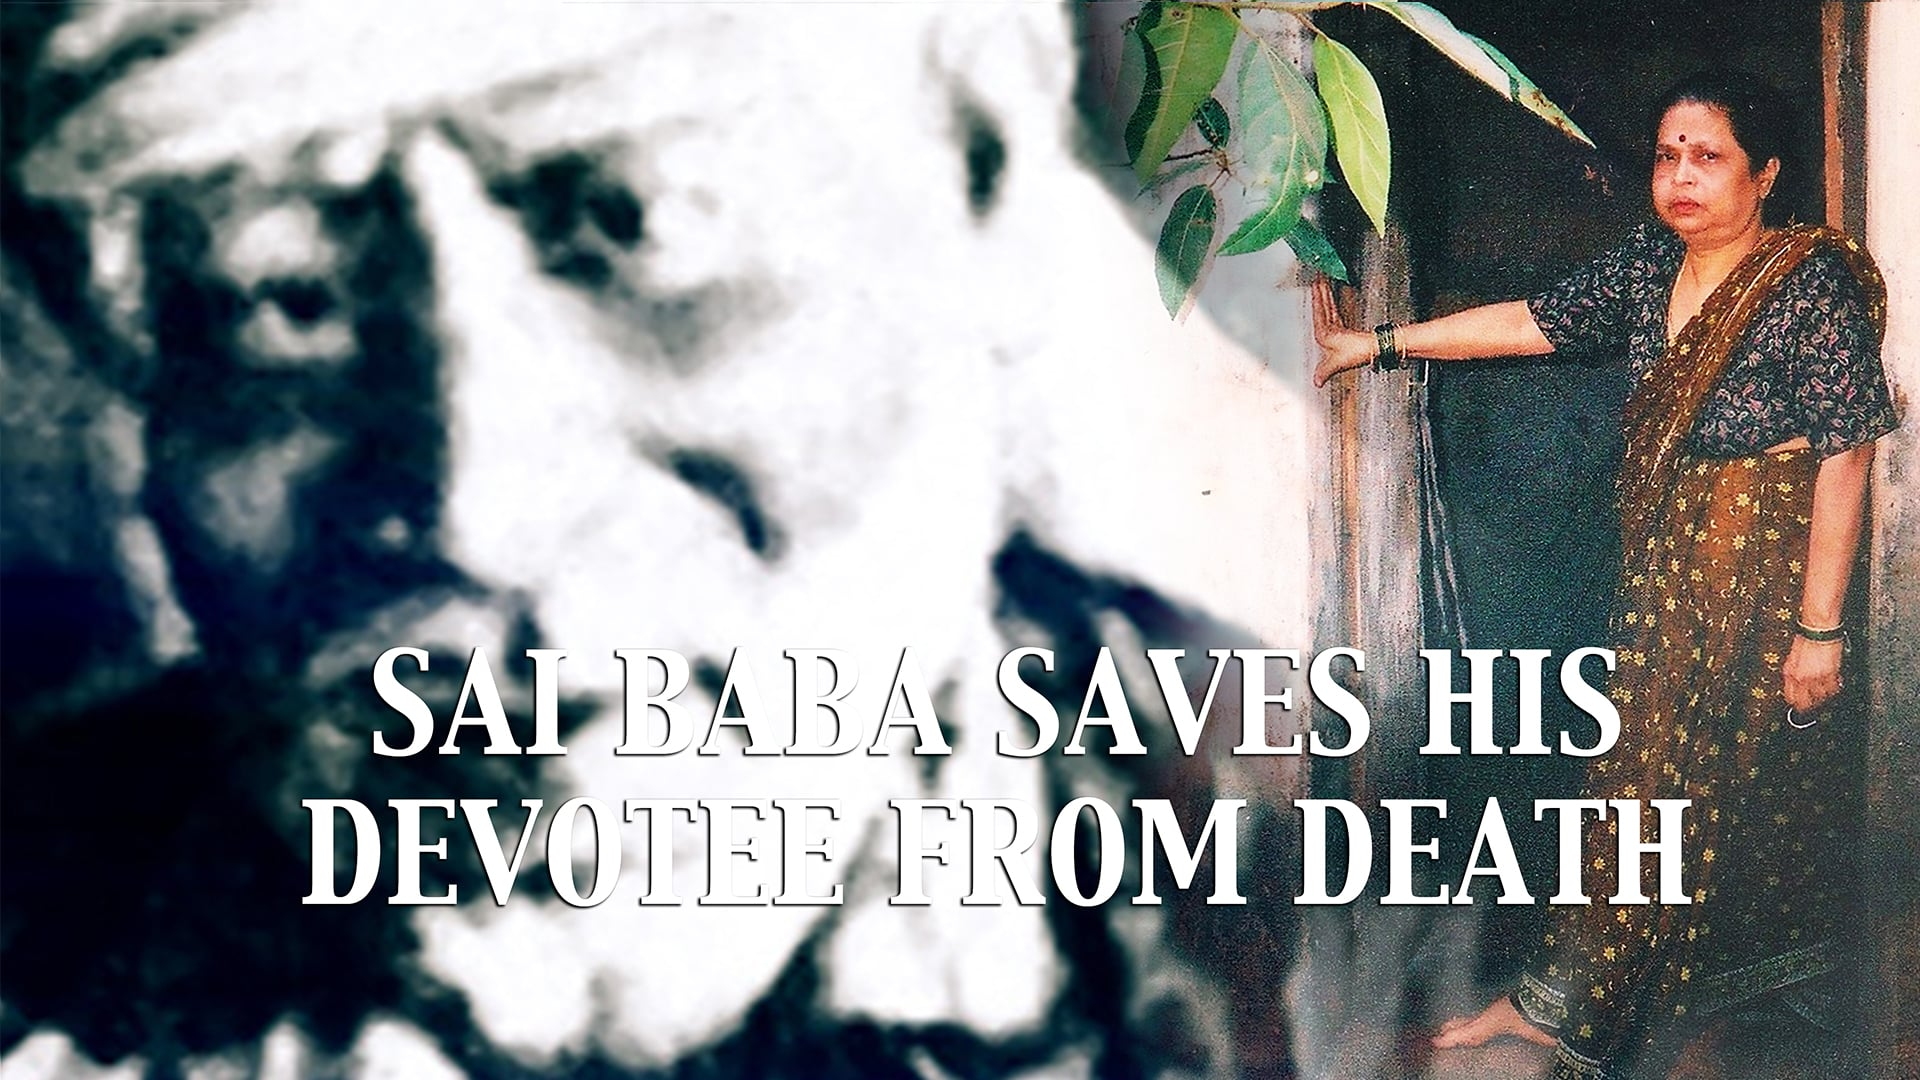 Baba Saves His Devotee from Death